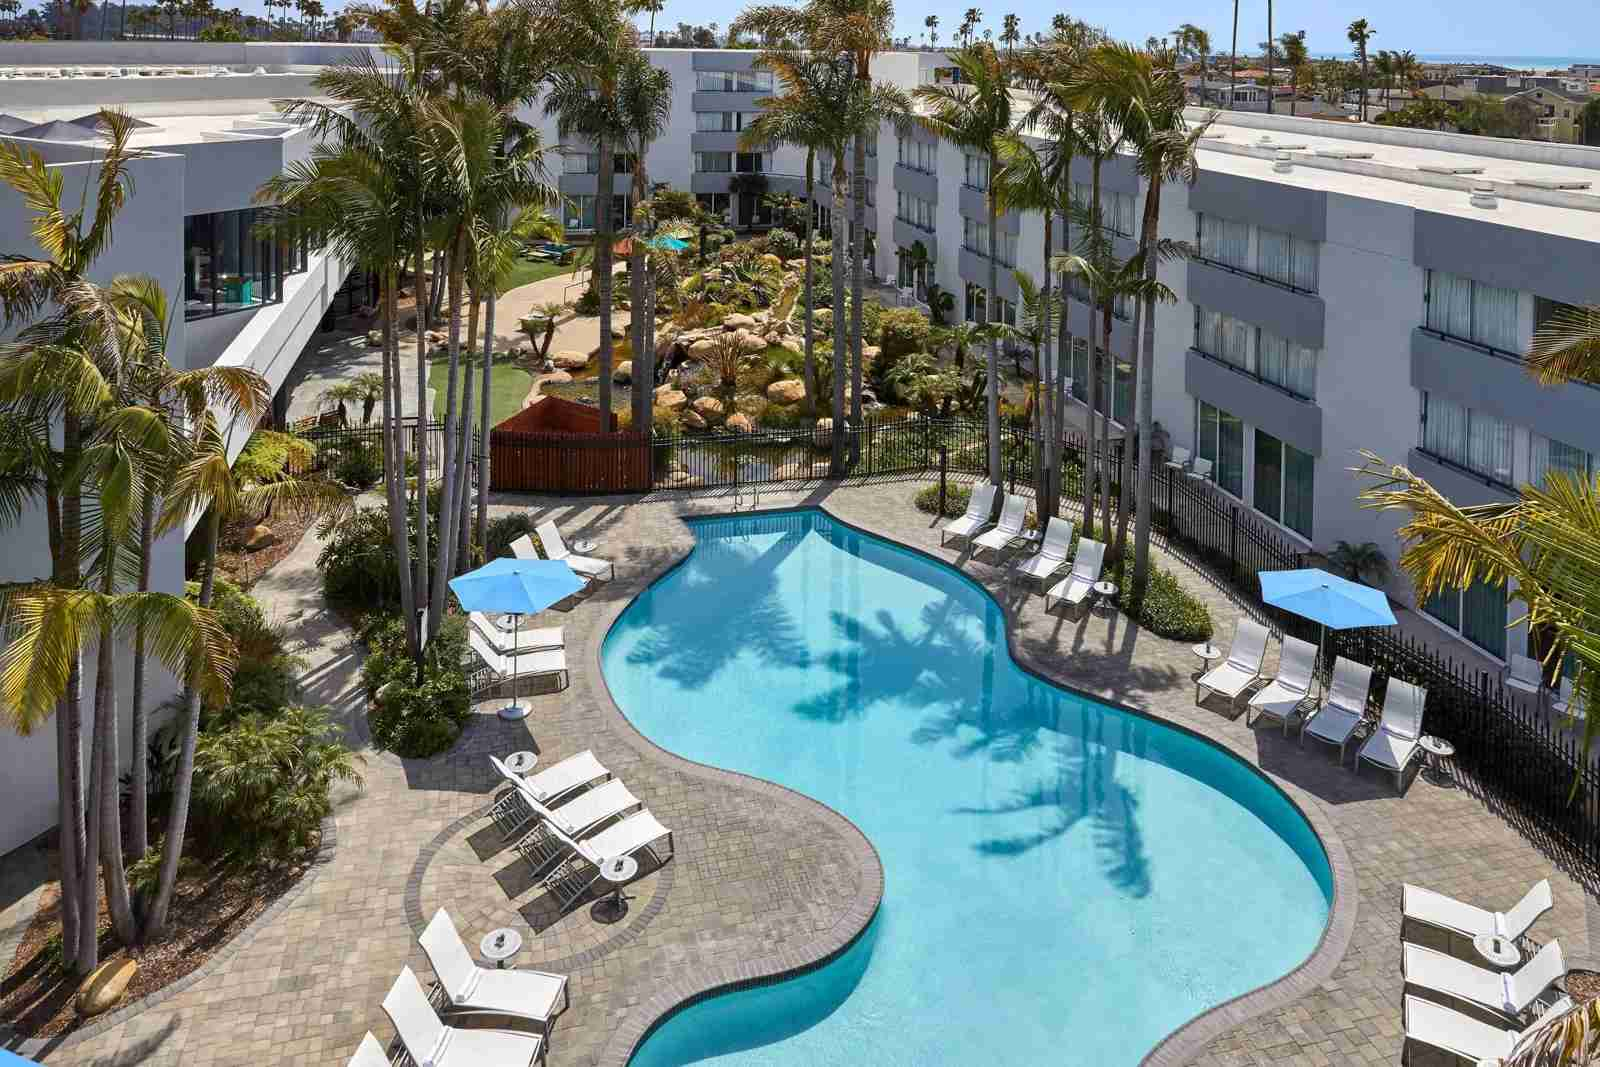 The Ventura Beach Marriott. (Photo courtesy of Marriott)